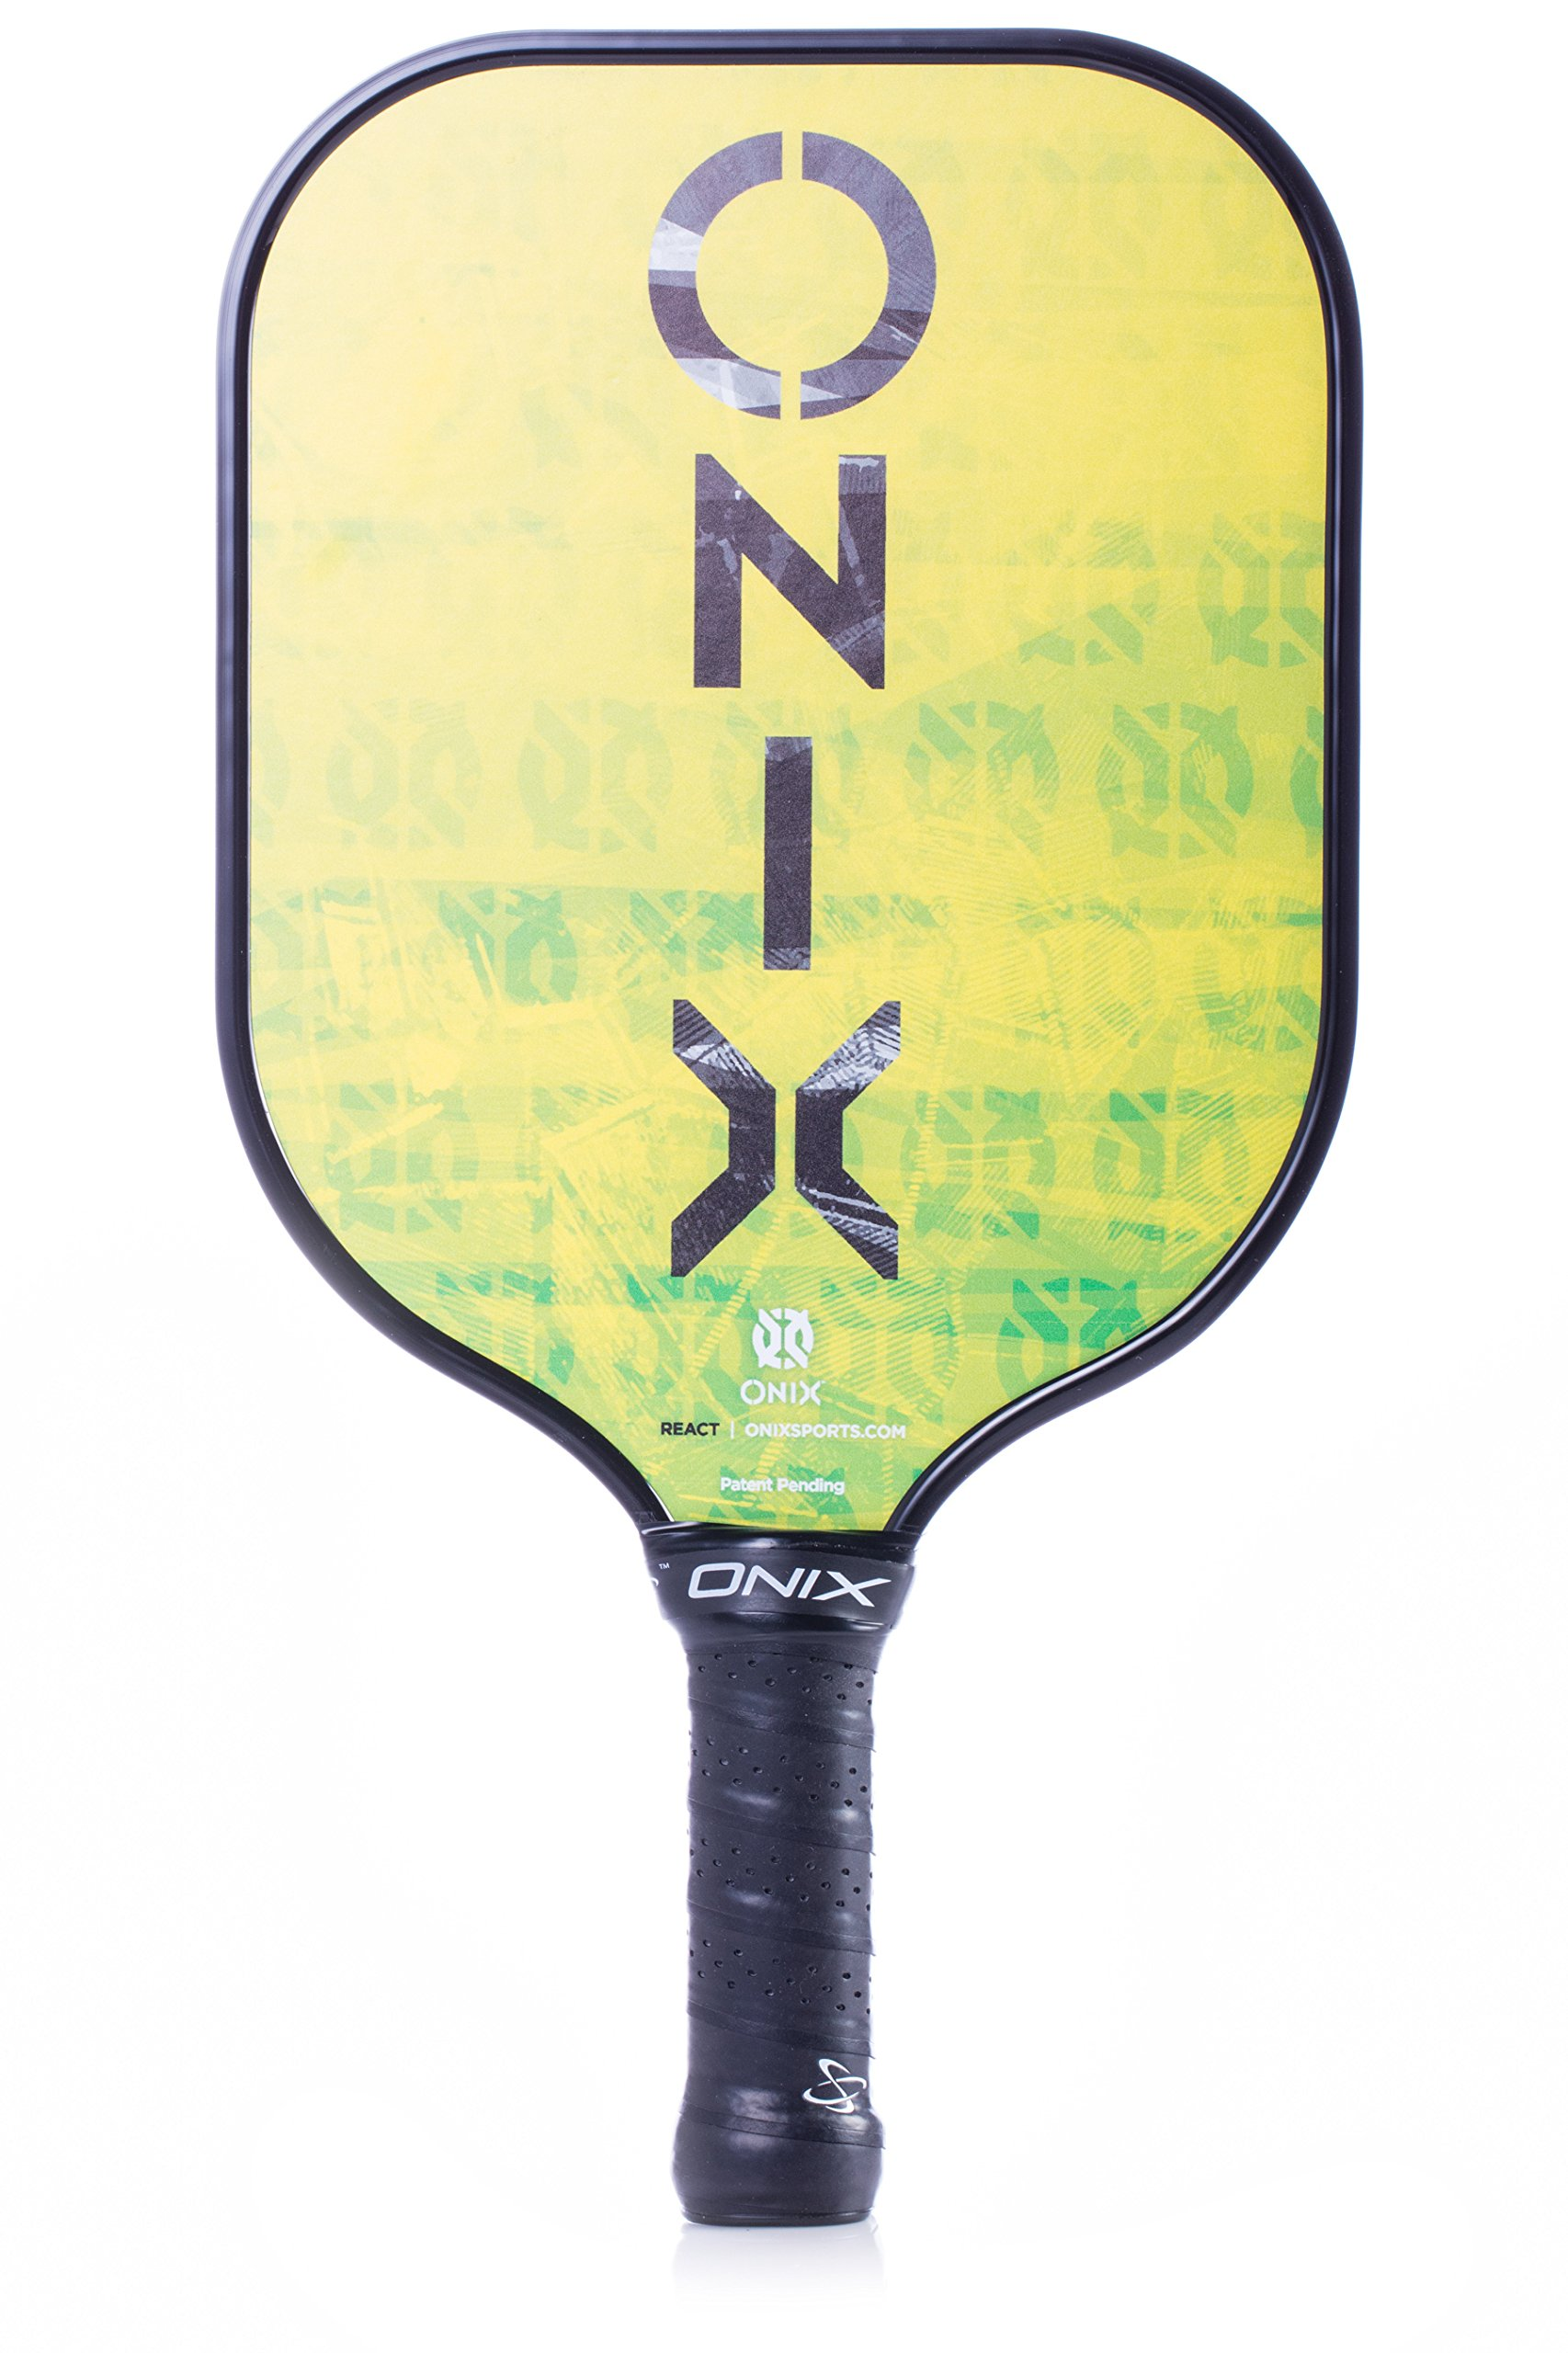 Onix React Pickleball Paddle Features Boosted Sweet Spot from Nomex Core Insert and Graphite Face